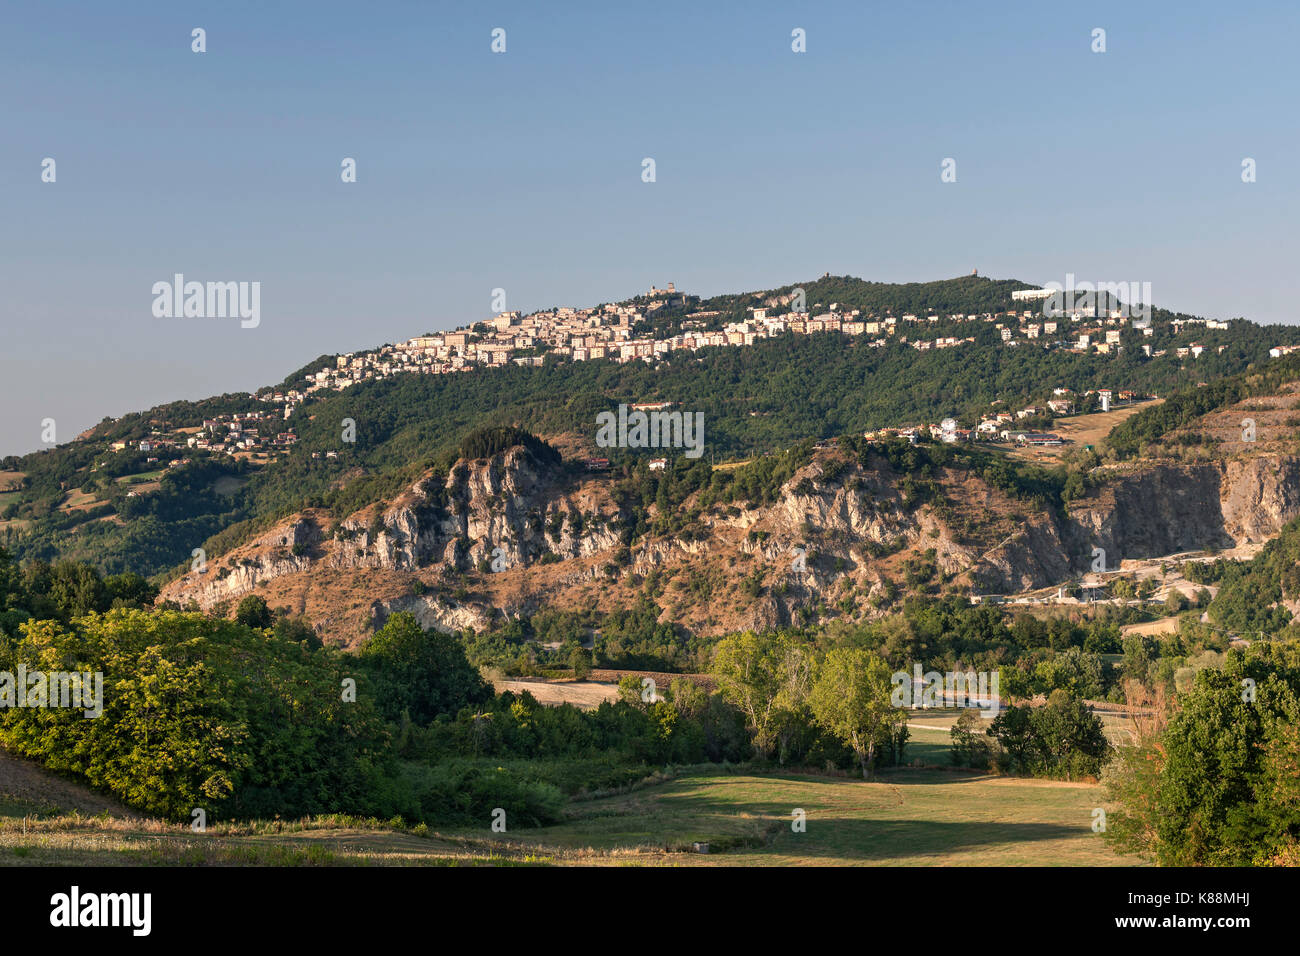 View of Mount Titan (Monte Titano) and the 'city' of Città, the capital of the republic of San Marino. - Stock Image